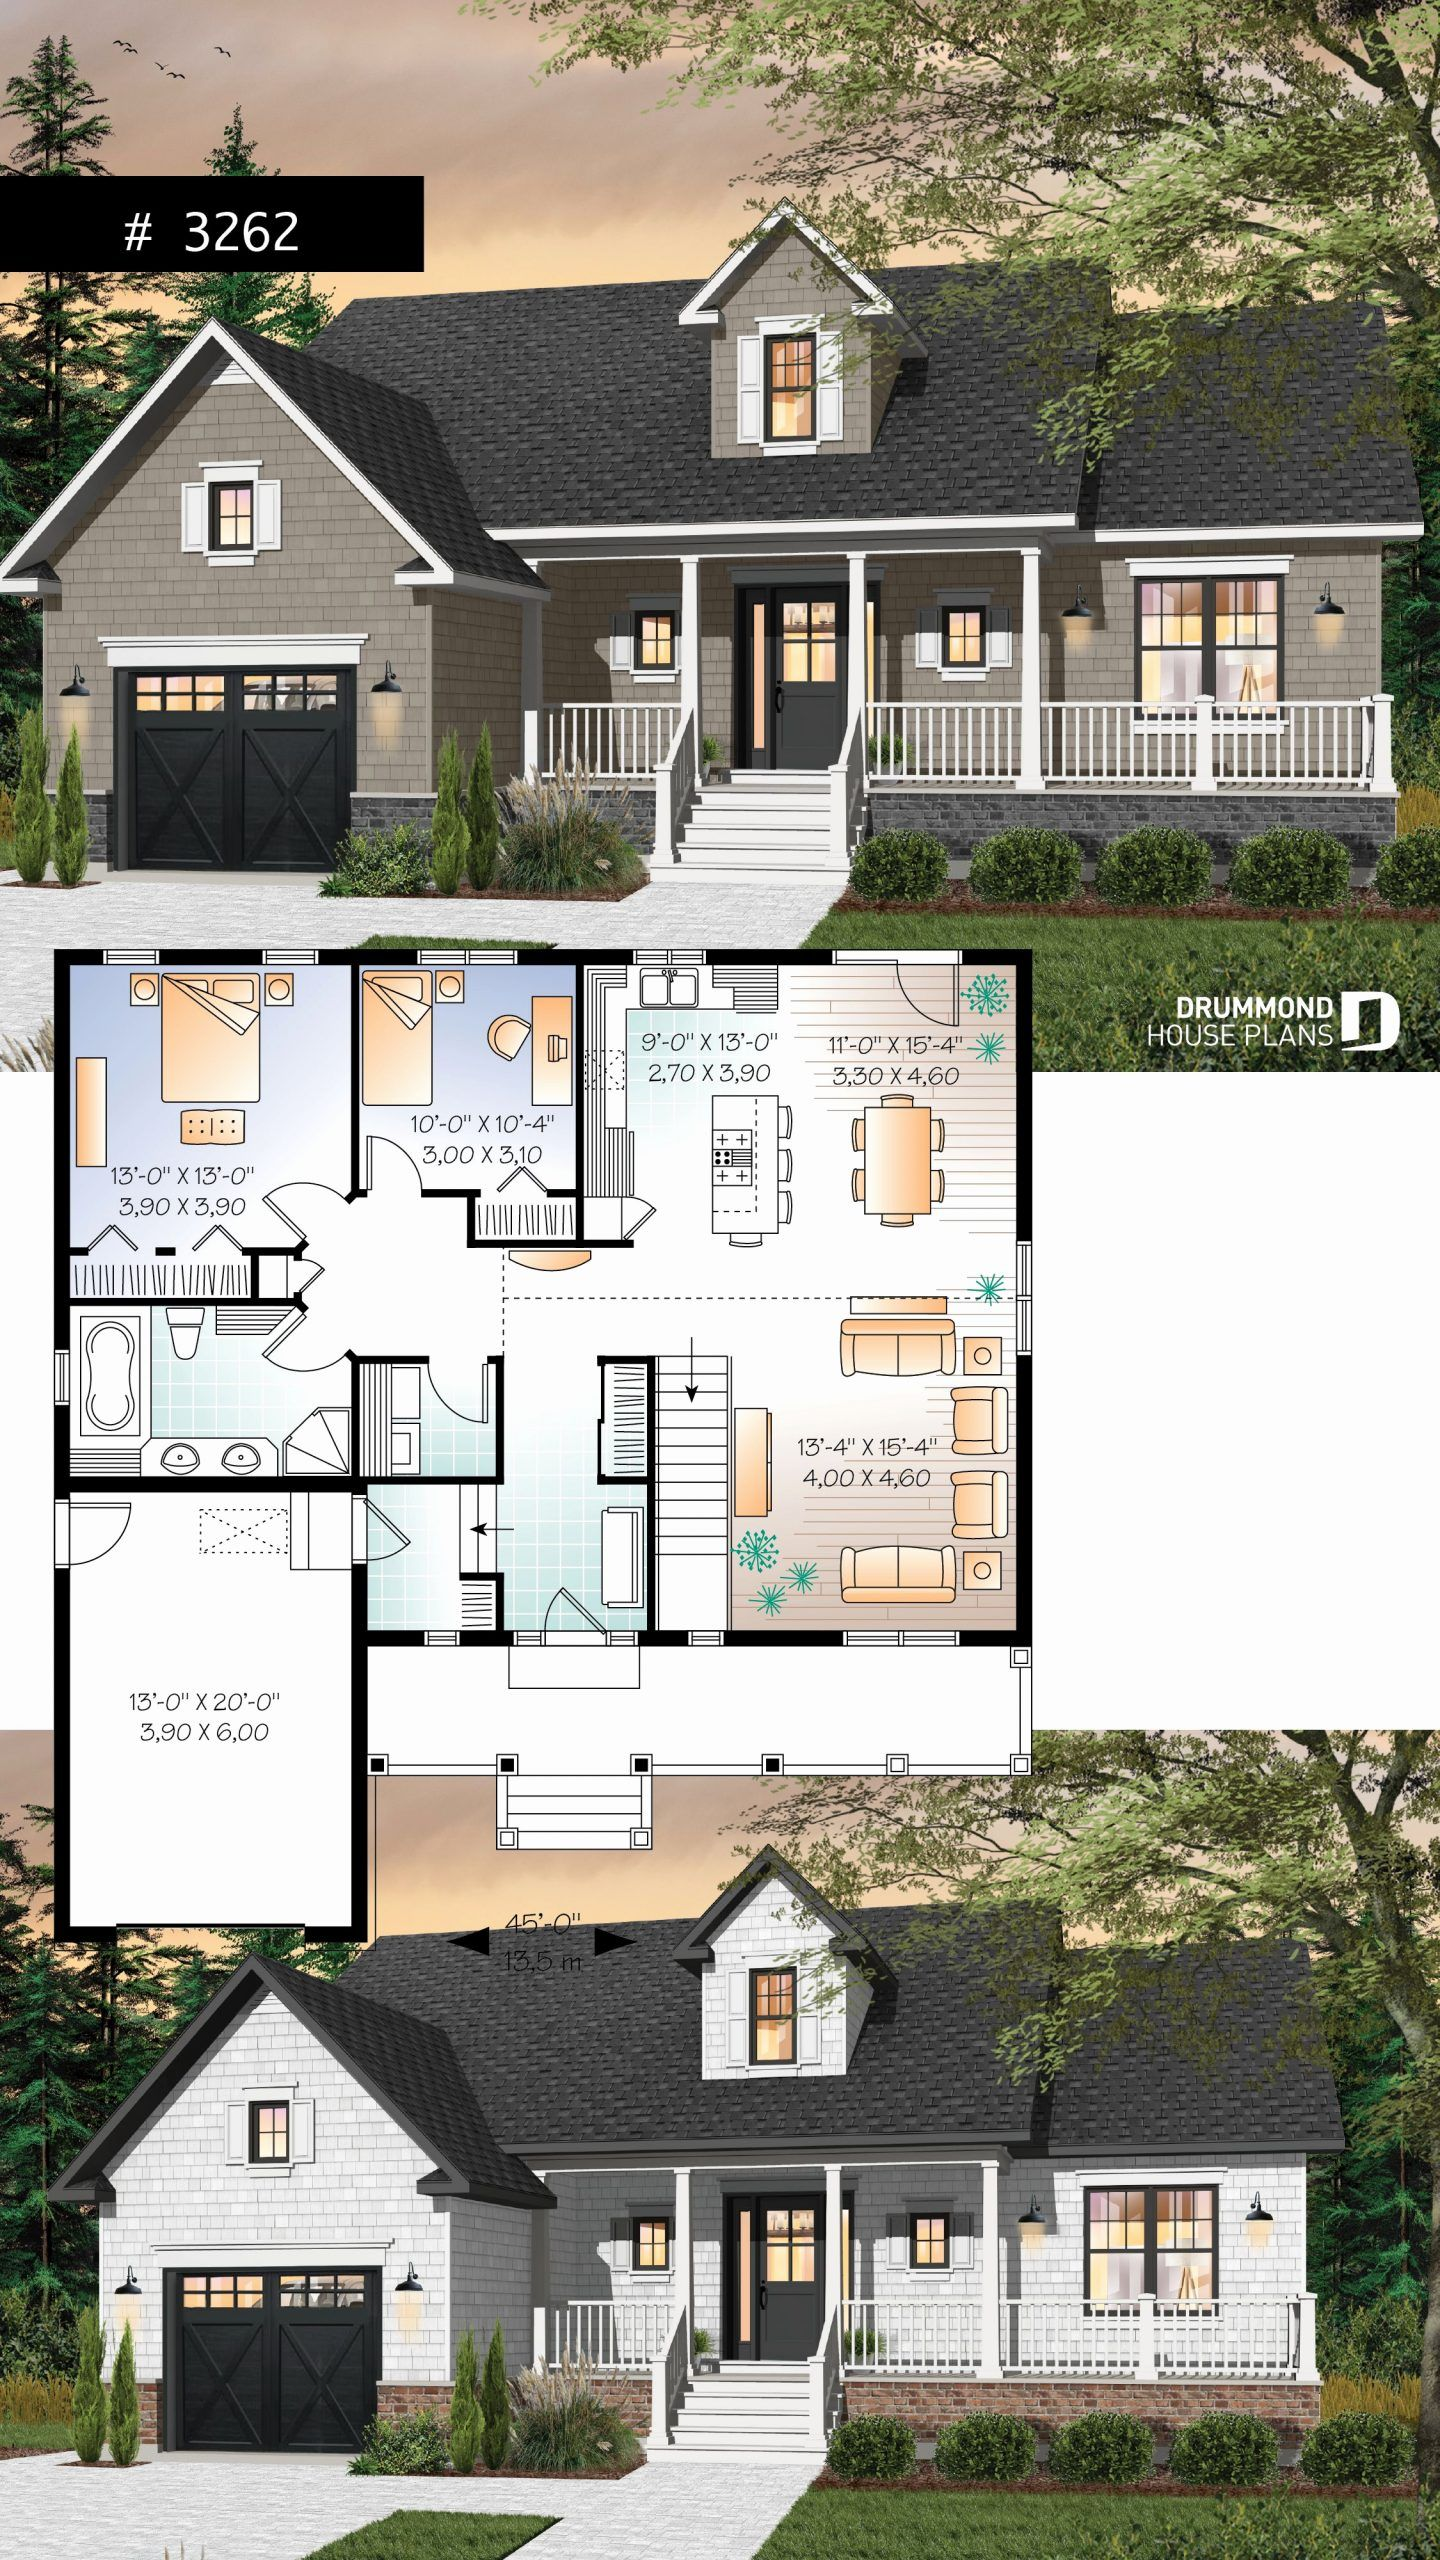 Cape Cod Style House Plans Inspirational House Plan Brewster No 3262 With Images Bungalow House Plans Craftsman House Plans House Plans